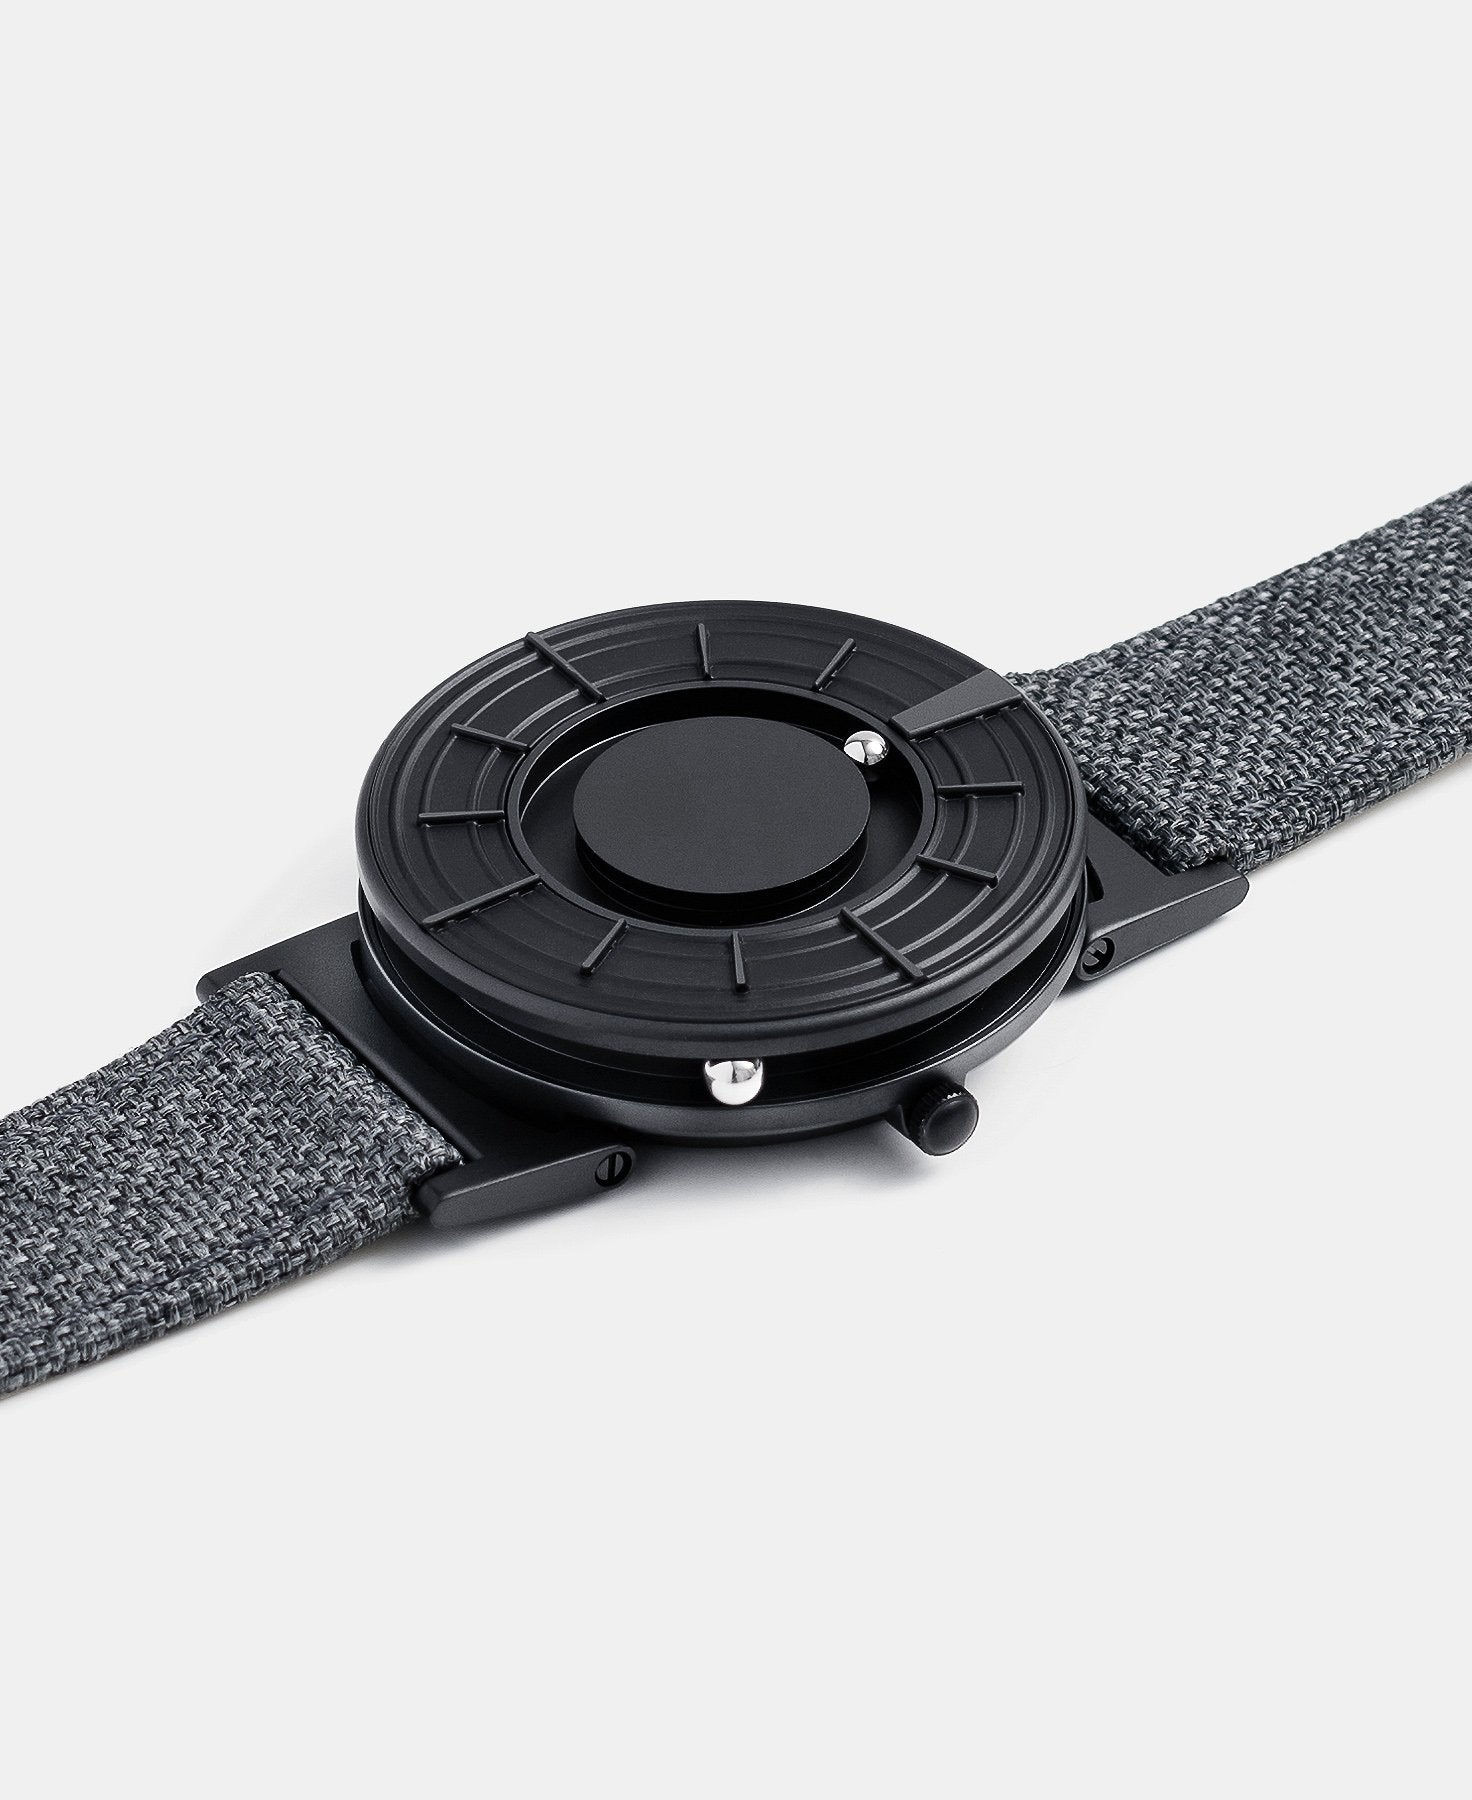 Load image into Gallery viewer, A photo of the watch lying flat on a surface. The recessed track around the outside of the watch face is shown with the hour ball bearing in the track. The raised markers are noticeable from this perspective.